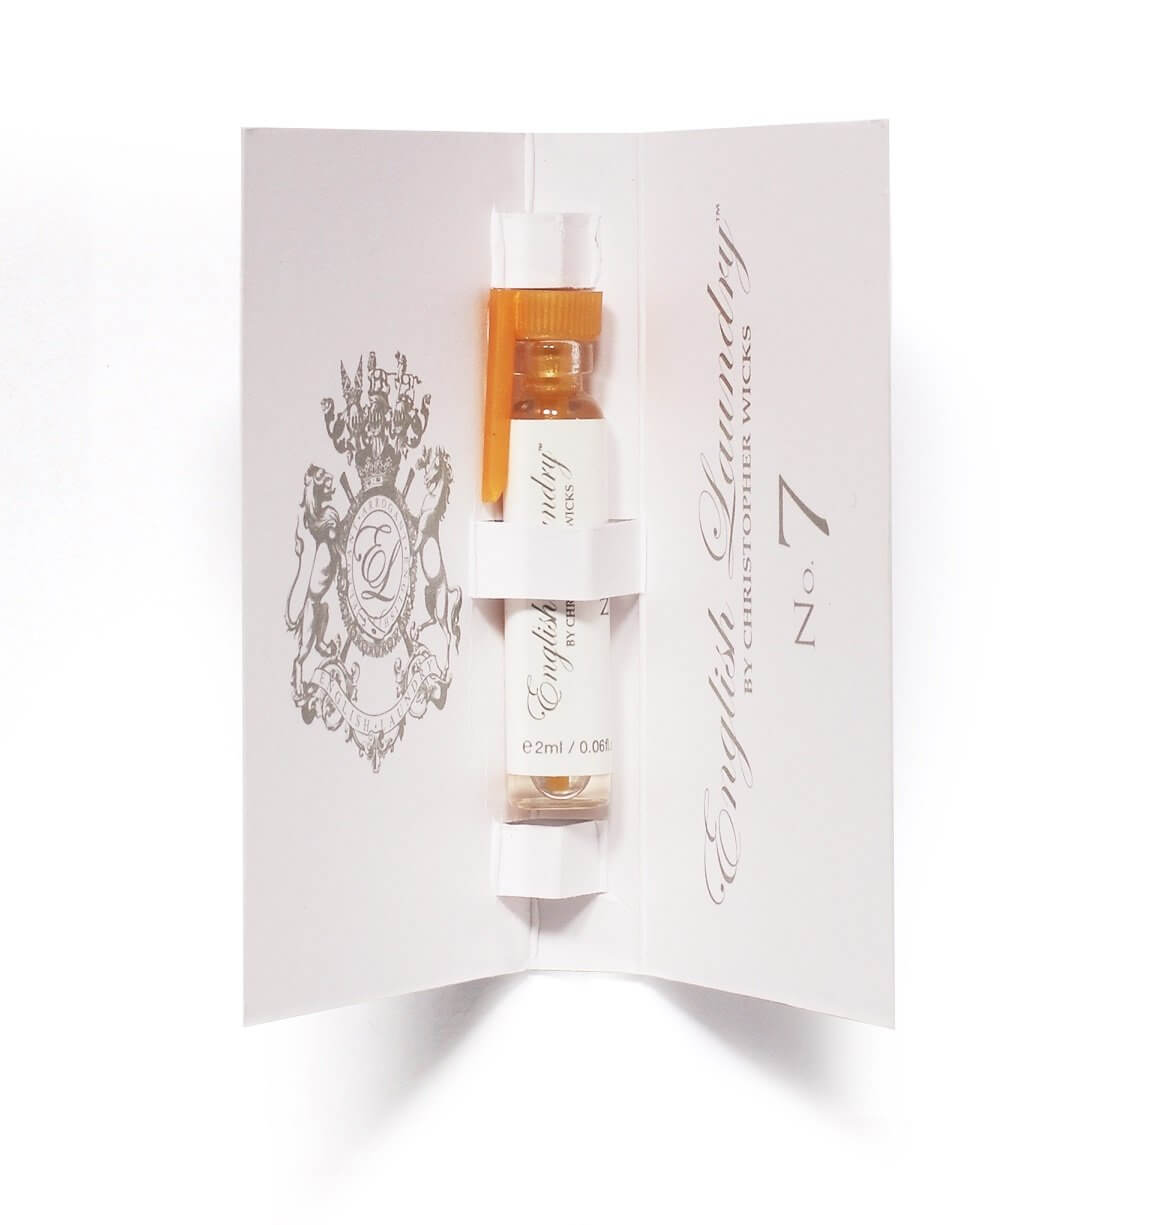 Buy 2ml Vial No 7 For Her English Laundry Fragrance For